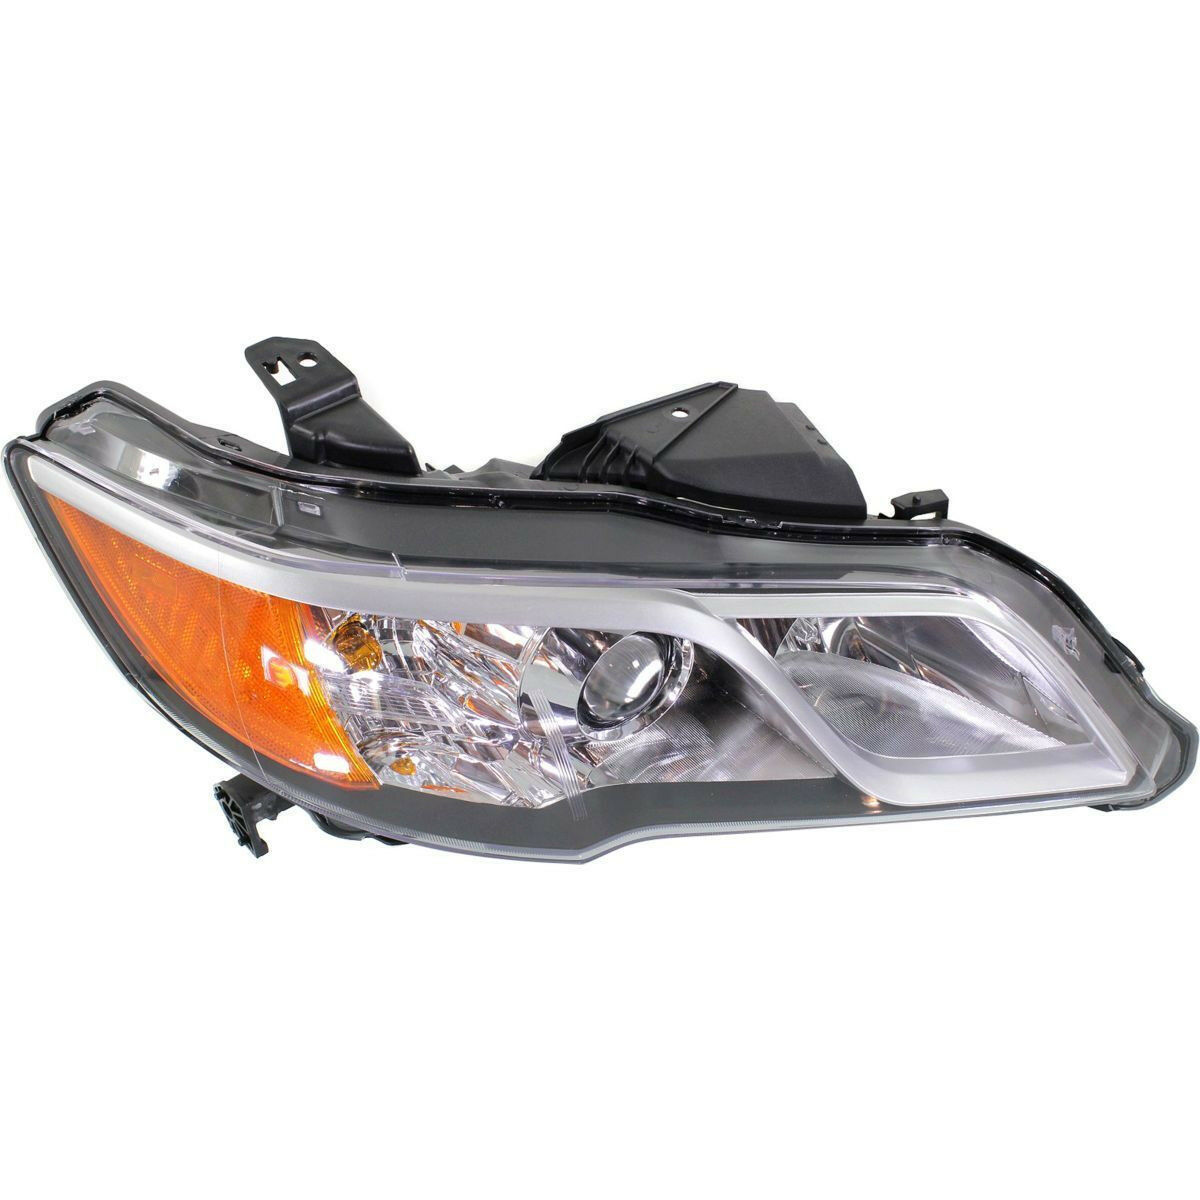 New RH Side HID Head Lamp Lens And Housing Fits Acura RDX